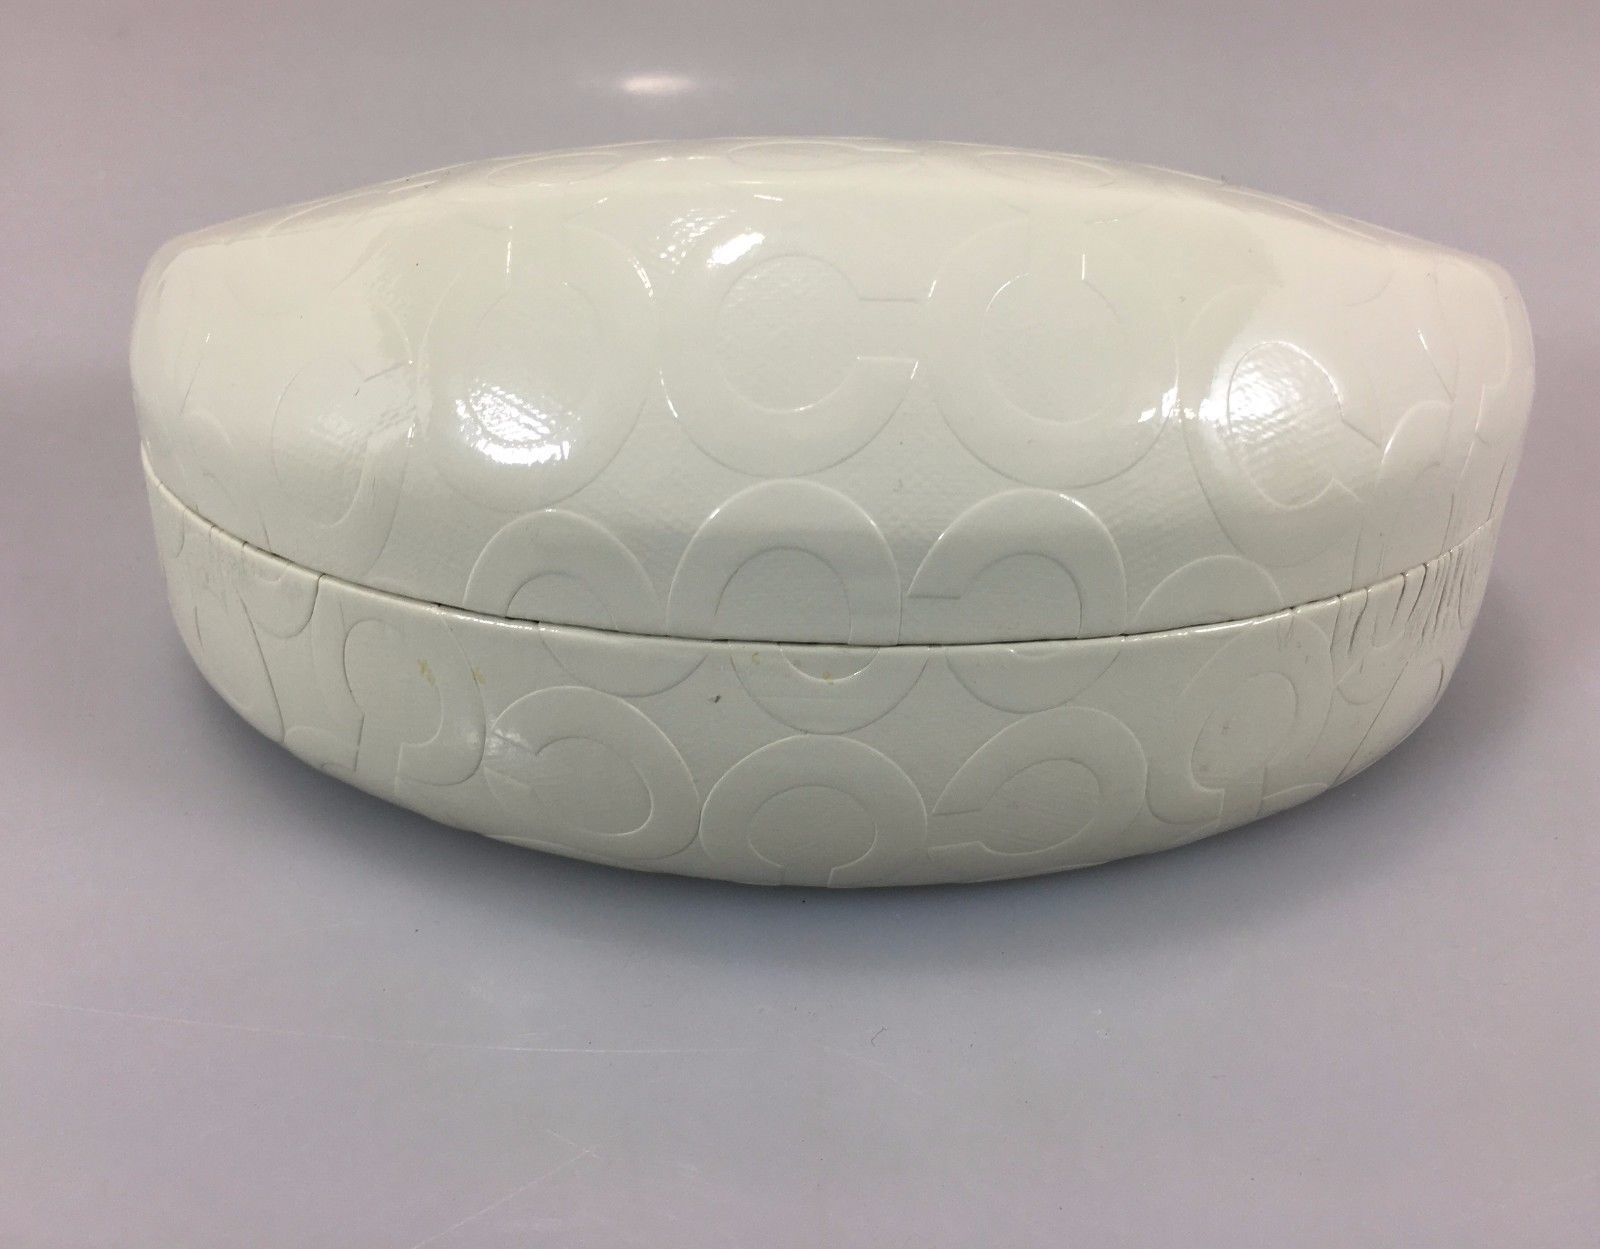 Coach White Signature Eyeglass Glasses Case Hard Clamshell 6 1/2 x 3 1/4 x 3